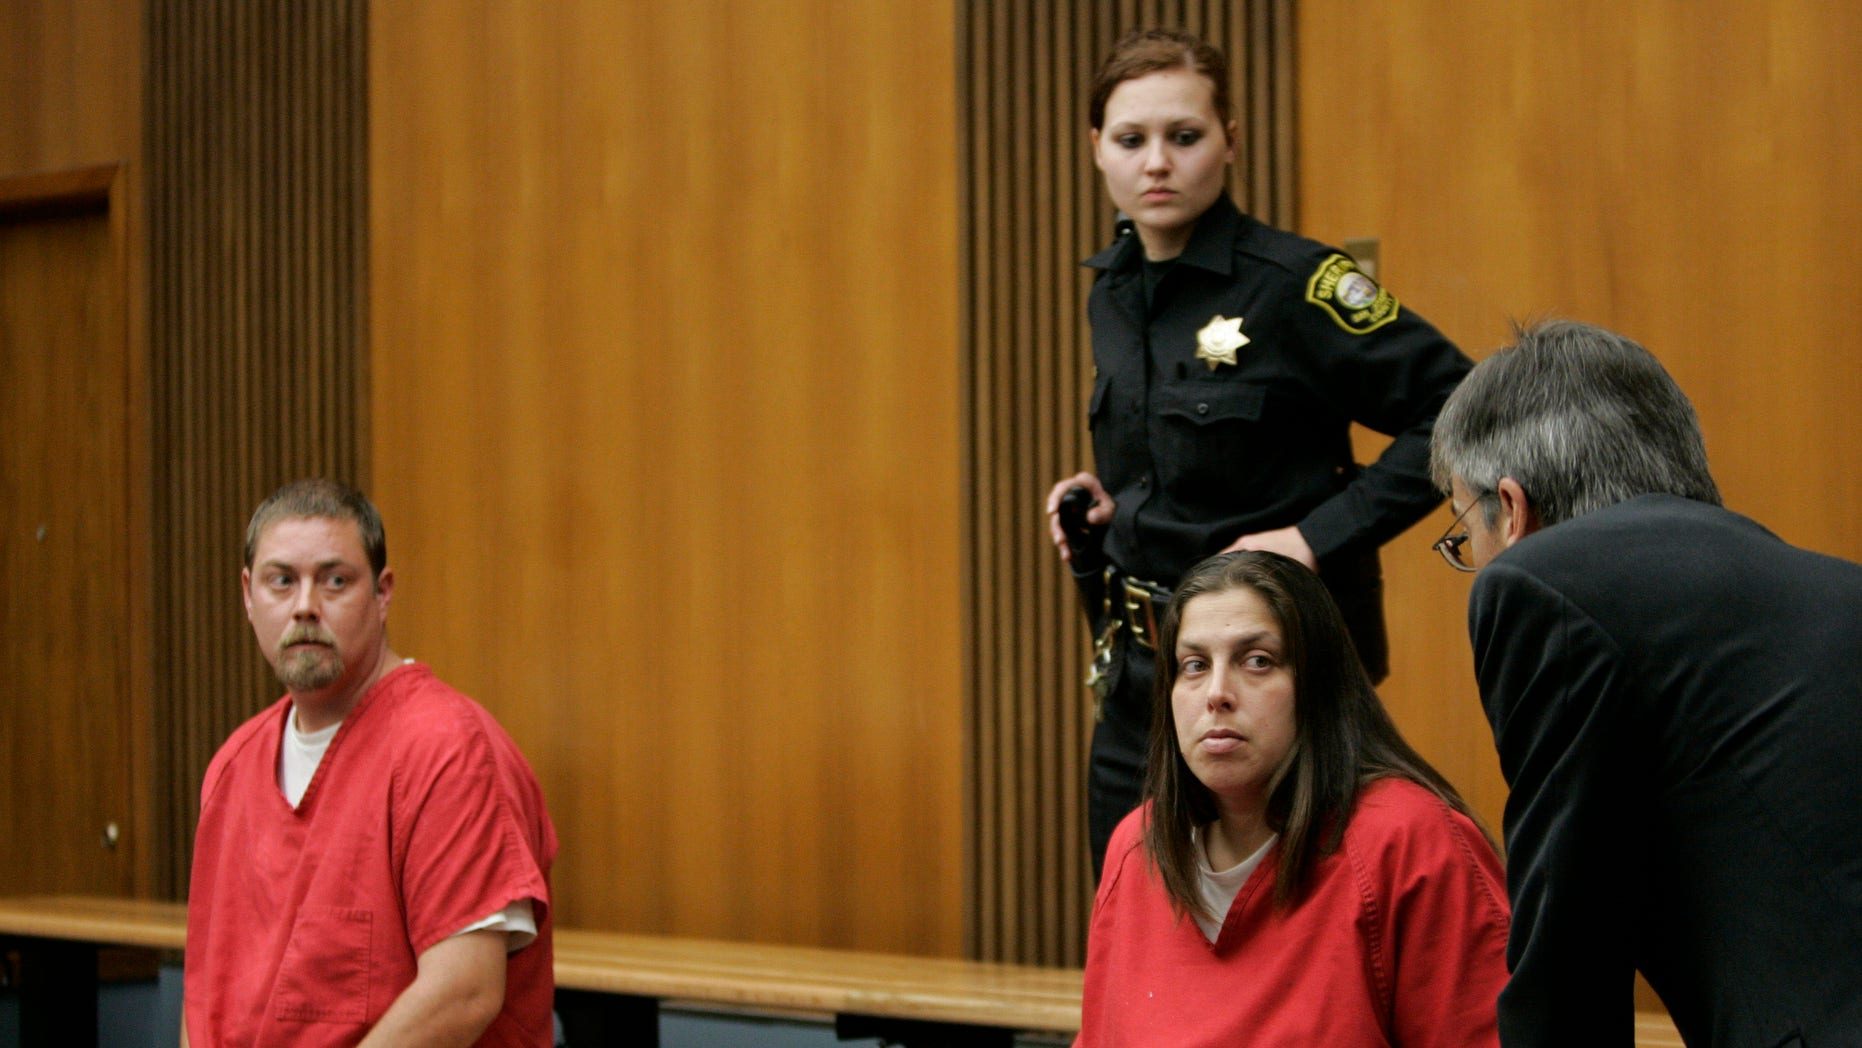 Dec. 4, 2008: Kelly Layne Lau, 30, and her husband Michael Schumacher, 34, appear in a Stockton, Calif., courtroom. Both admitted to kidnapping and torturing a then 16-year-old boy authorities say was sometimes kept shackled inside their home.